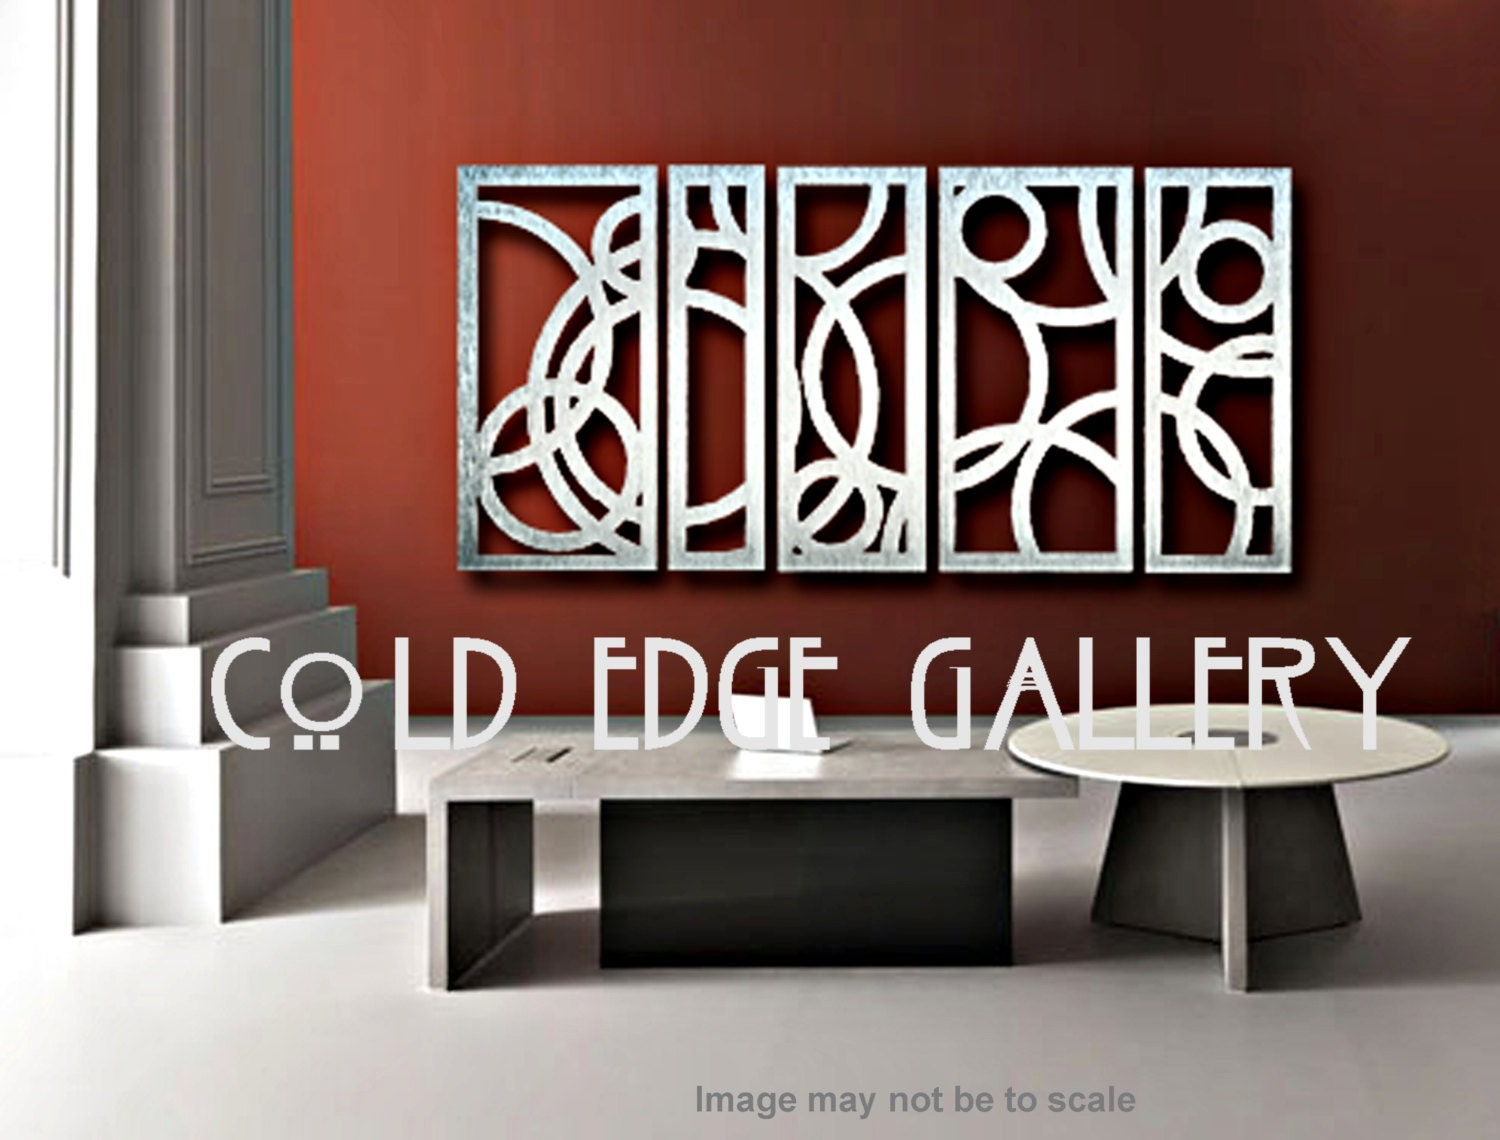 Extra Large Art Metal Wall Art Art Decor By Coldedgegallery: large wall art